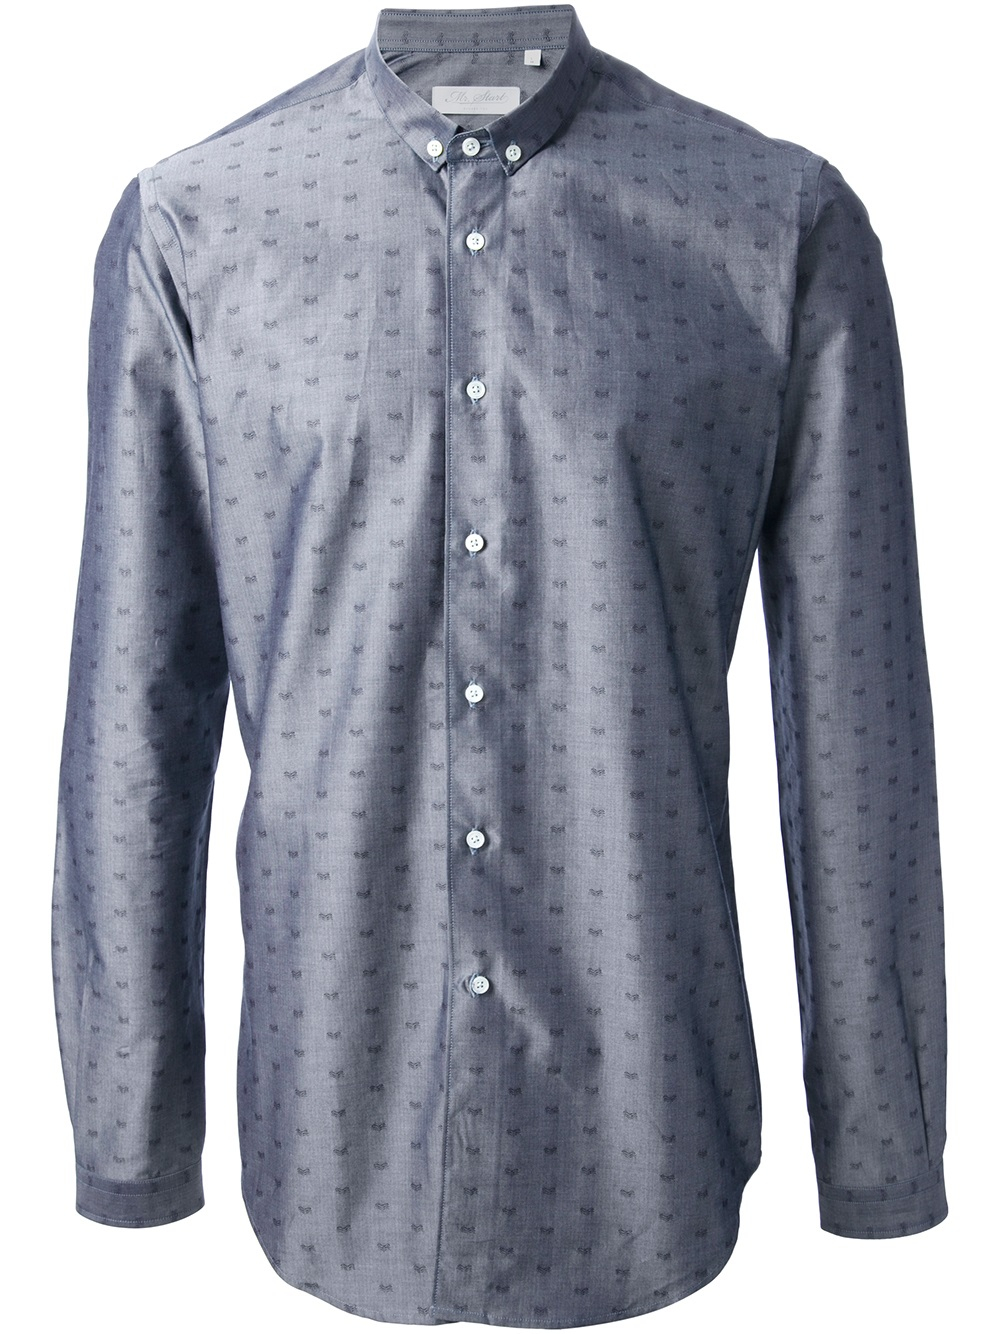 Mr start mini button down shirt in gray for men grey lyst for Mens grey button down dress shirt